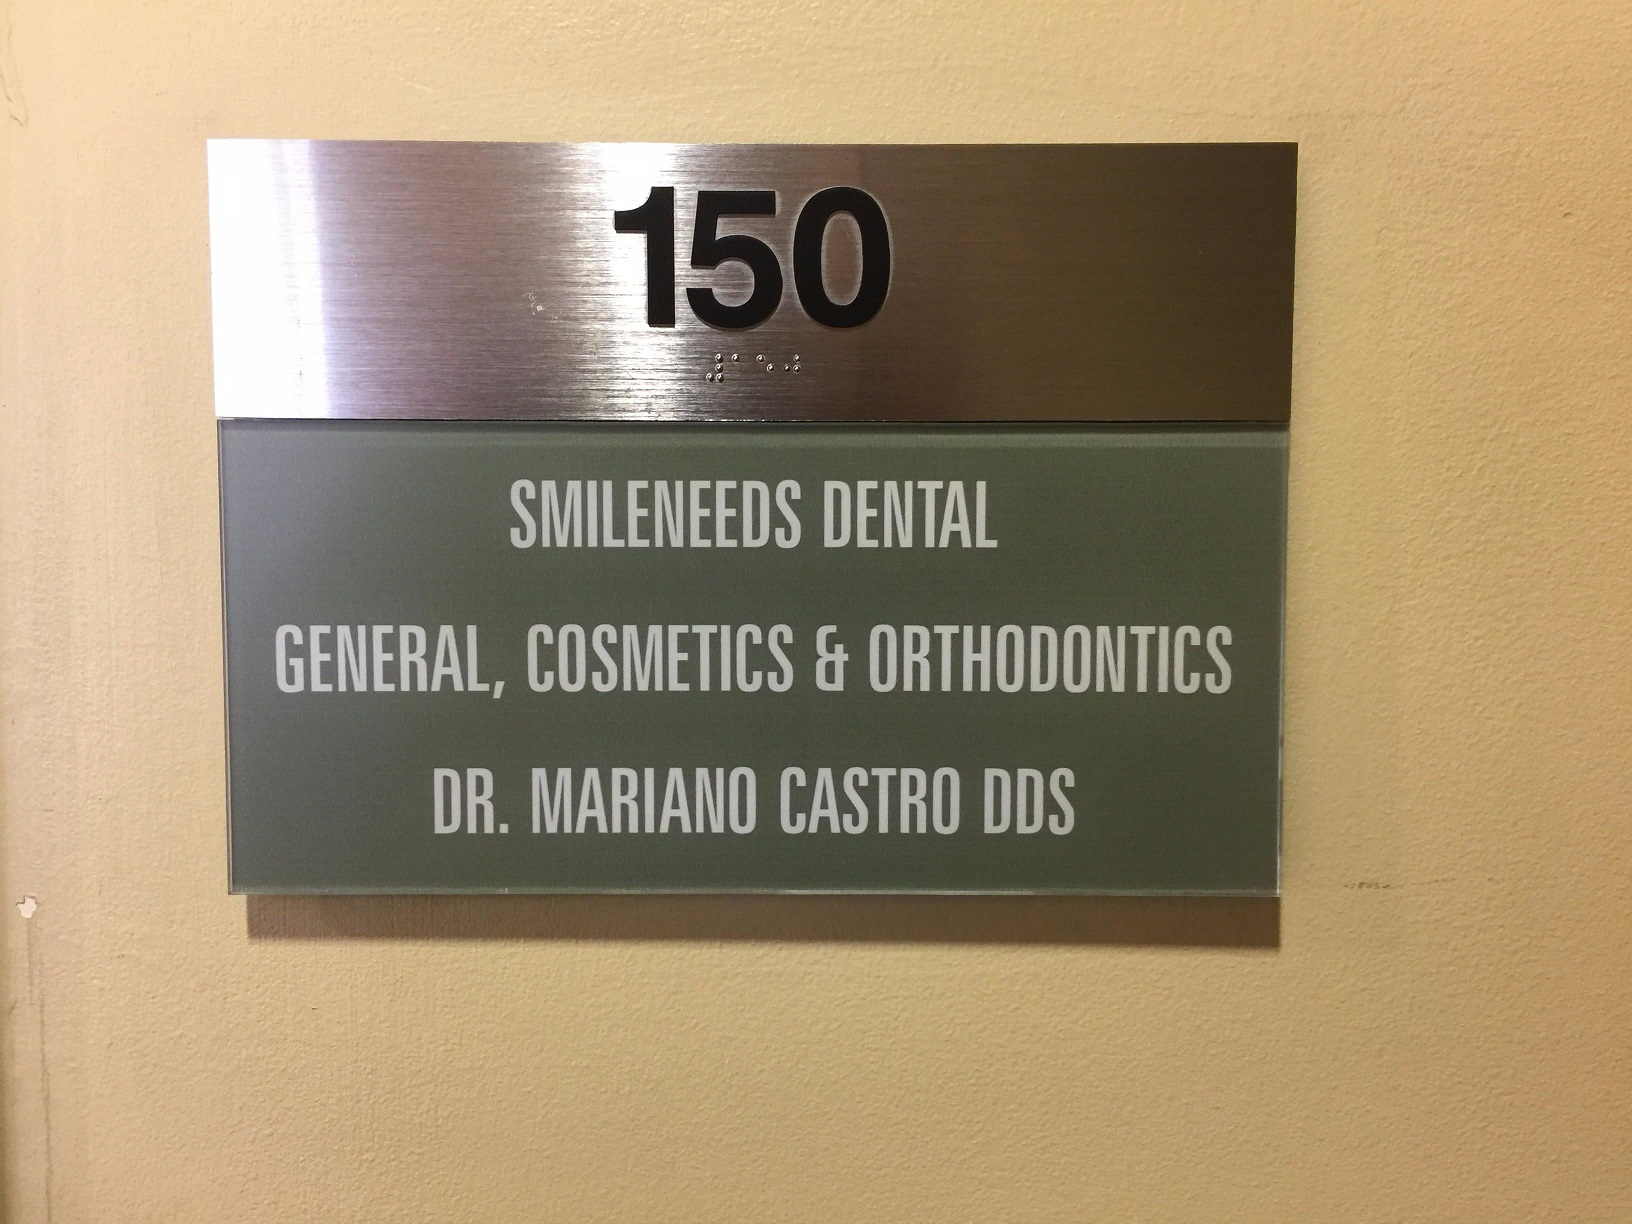 Welcome to Smileneeds Dental in Suite 150